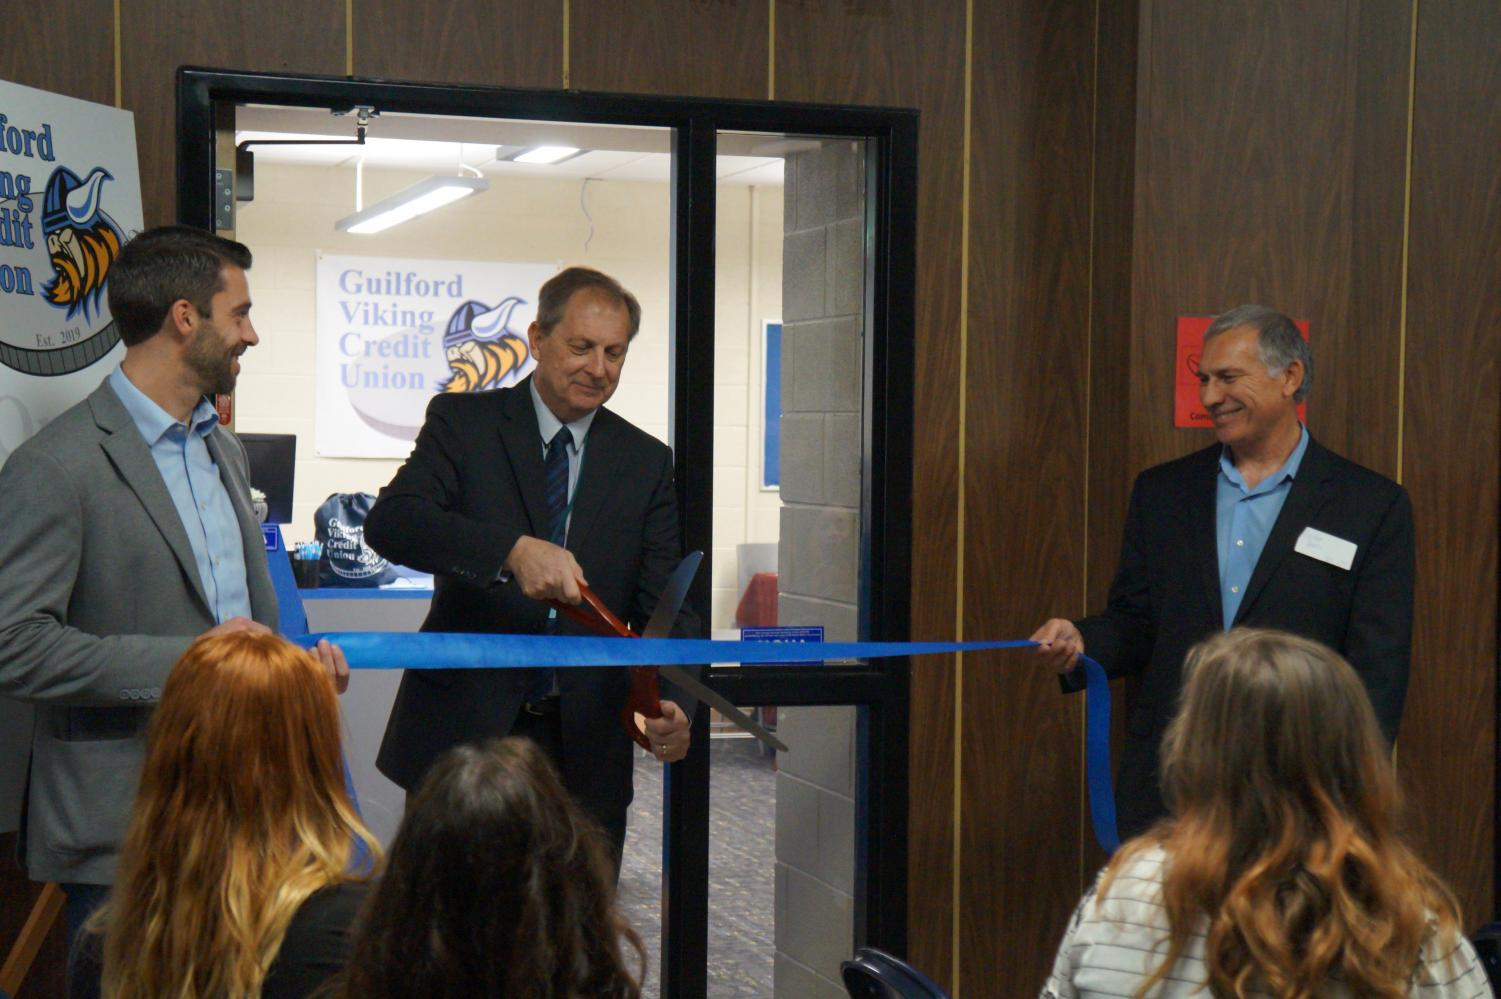 A new edition to Guilford: Viking Credit Union opens 11/21/19